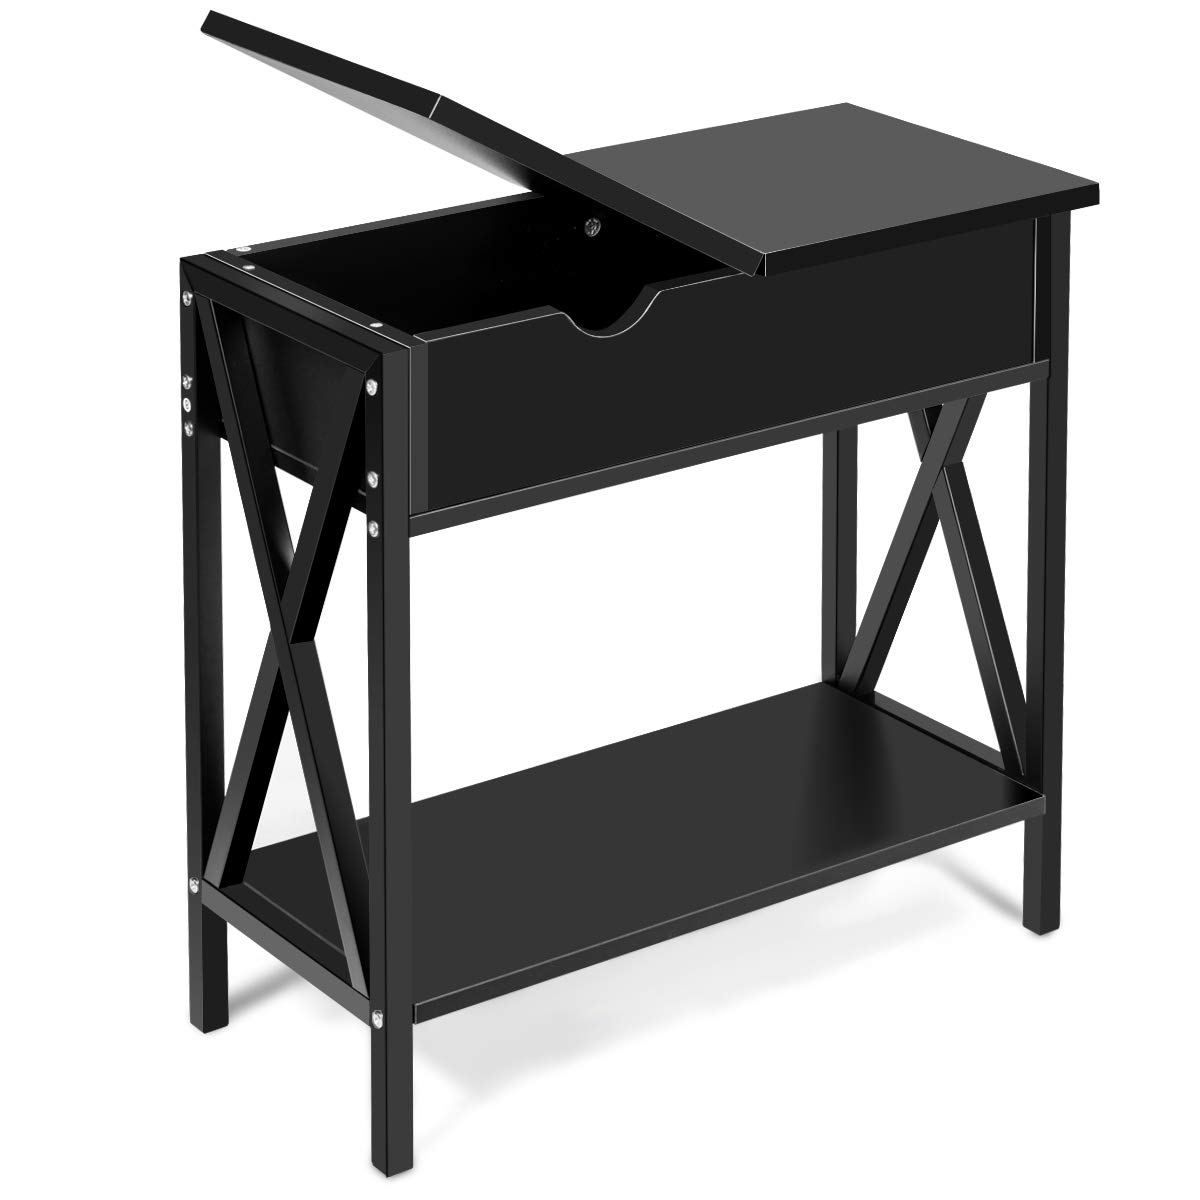 Giantex Console Table W/Flip Top, Shelf and Hidden Hinged Storage for Entryway Hallway, Living Room, Office and Bedroom, Multifunctional Usage Accent Corner Couch Sofa Side Table End Table (Black) by Giantex